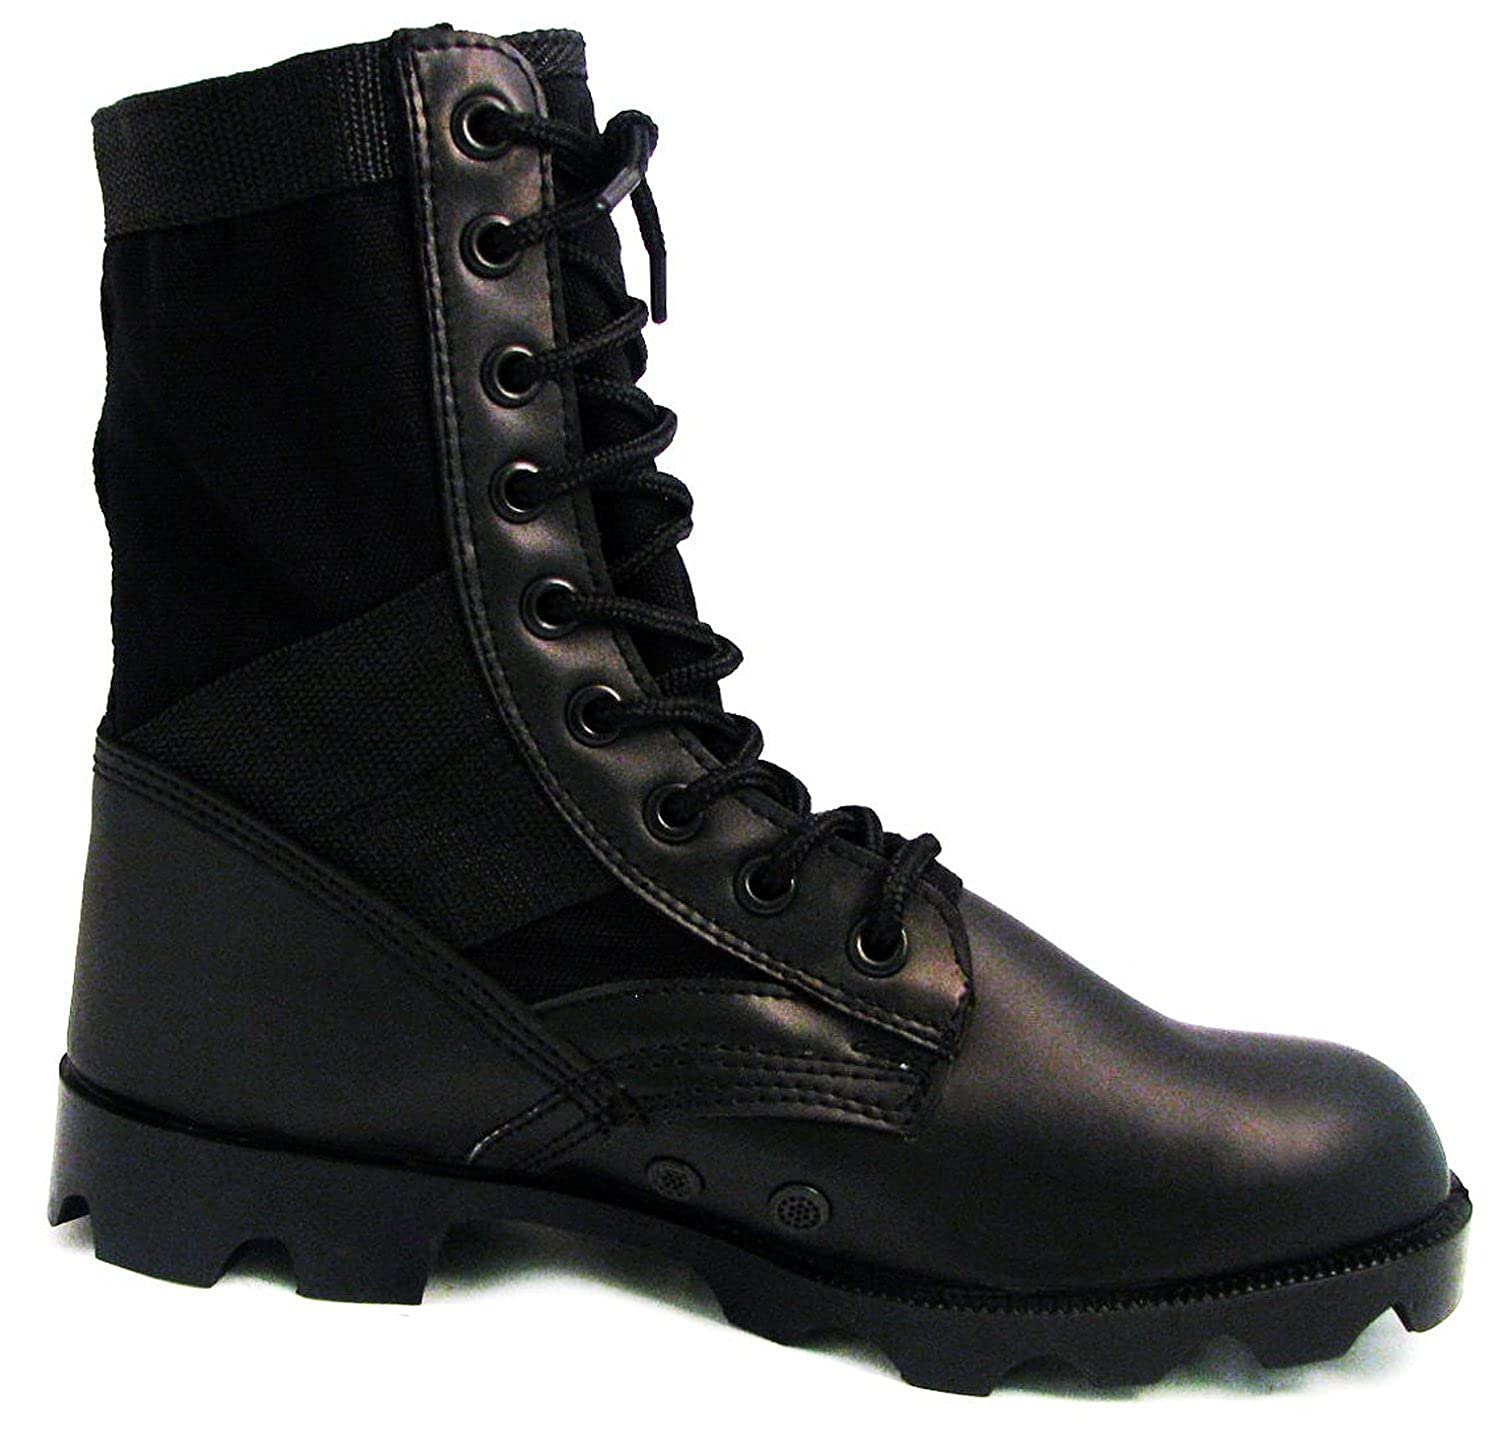 Men s Jungle Boots G.I. Type Lace up Tactical Combat Military Work Shoes  Width  Wide (W or 2E) aebfafcd055